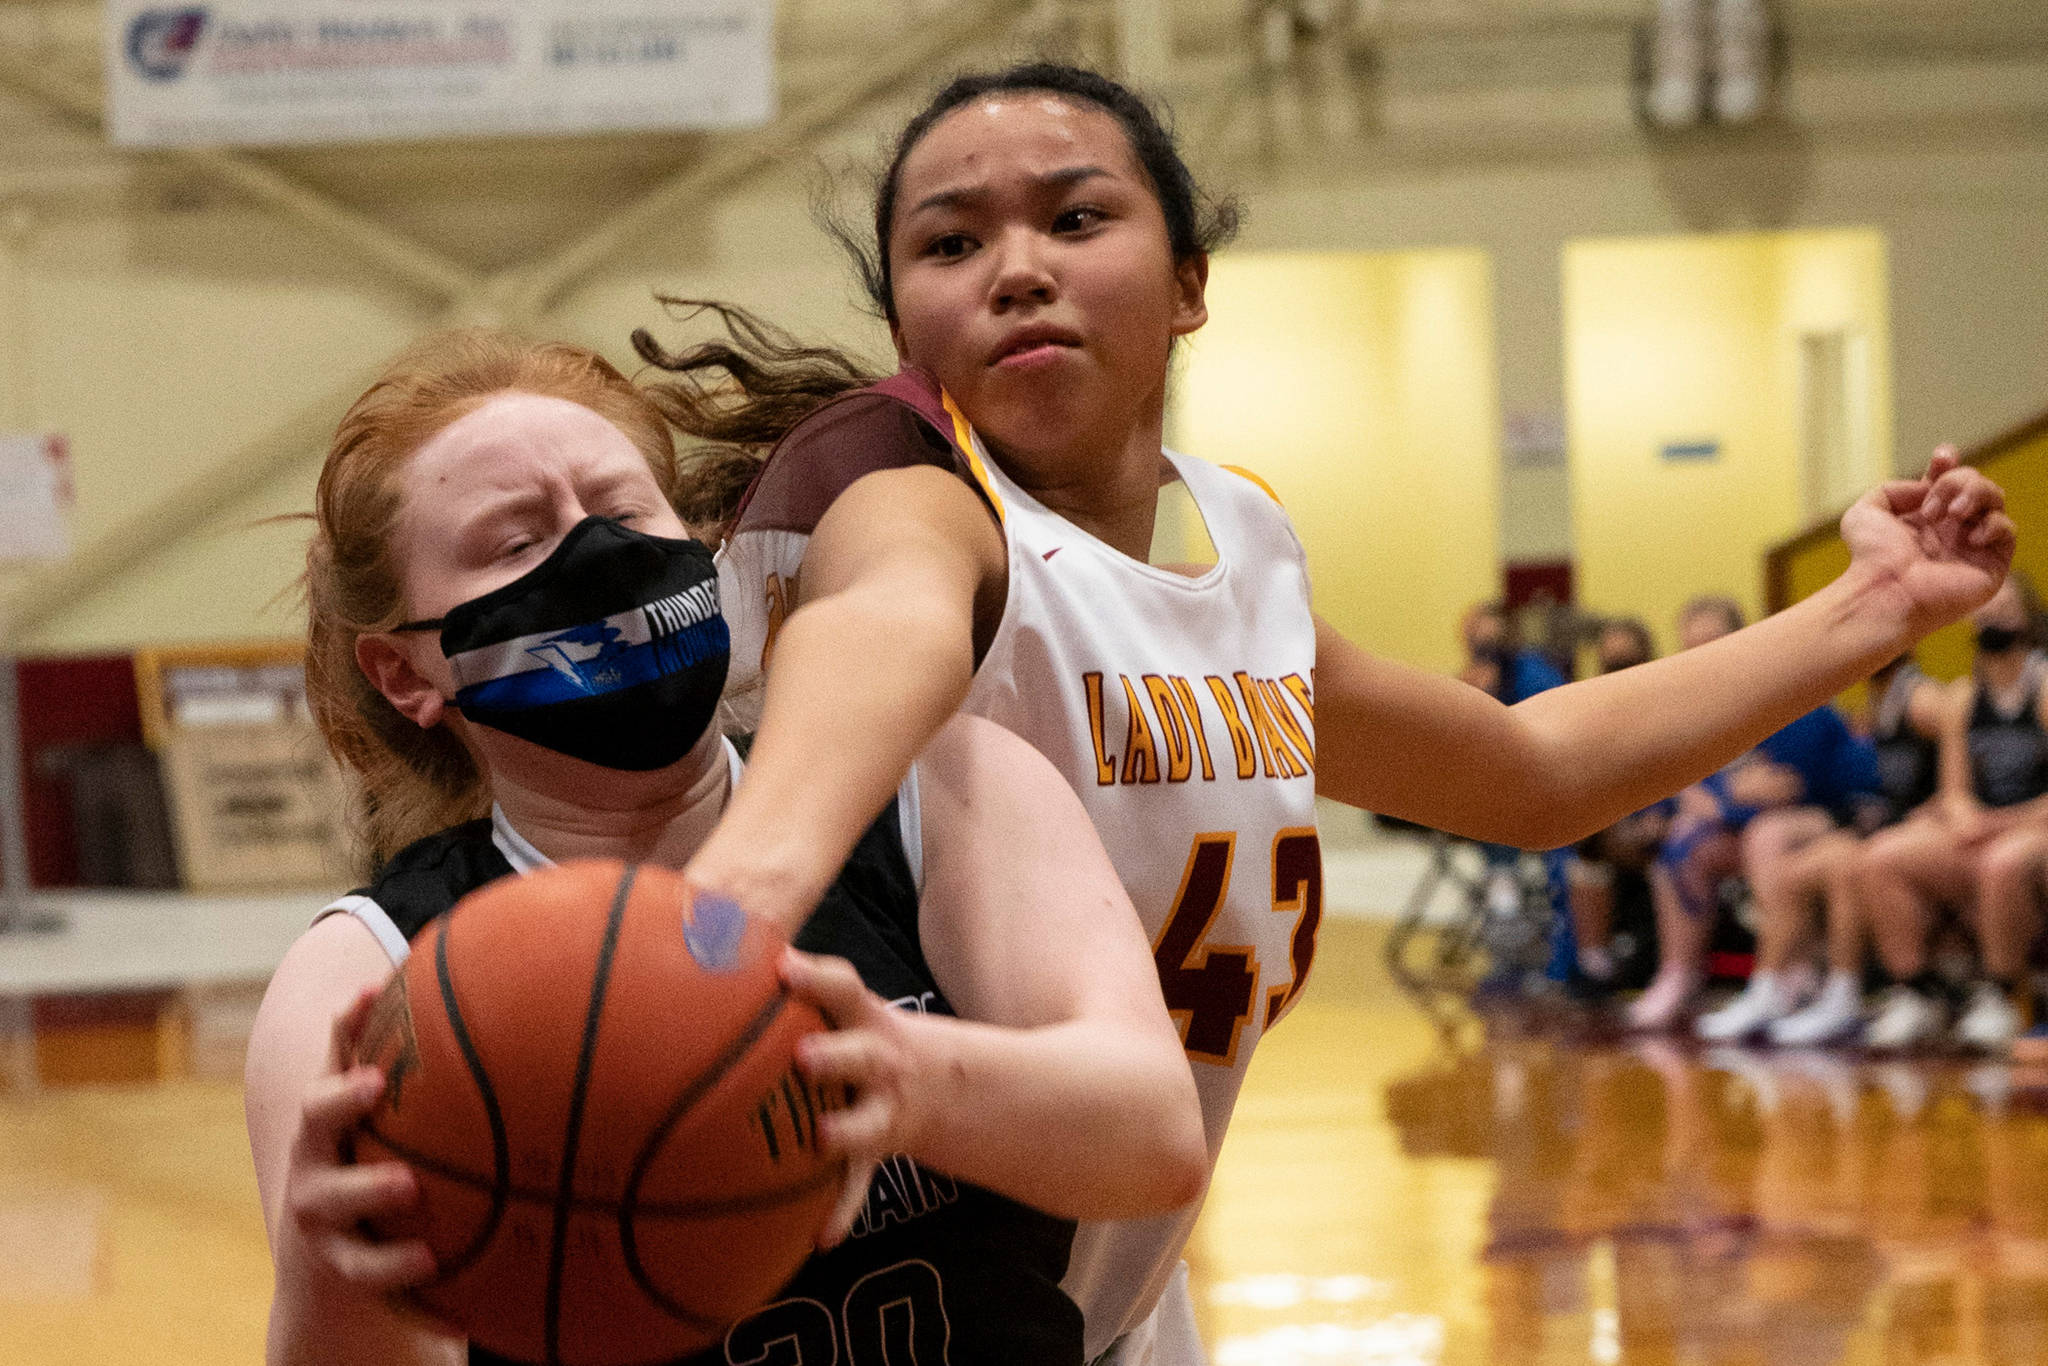 Thunder Mountain High School player Mackenzie Gray, left, competes with Mt. Edgecumbe High Schoool in Sitka on Saturday, Feb. 6, 2021. (Sitka Sentinel / James Poulson)